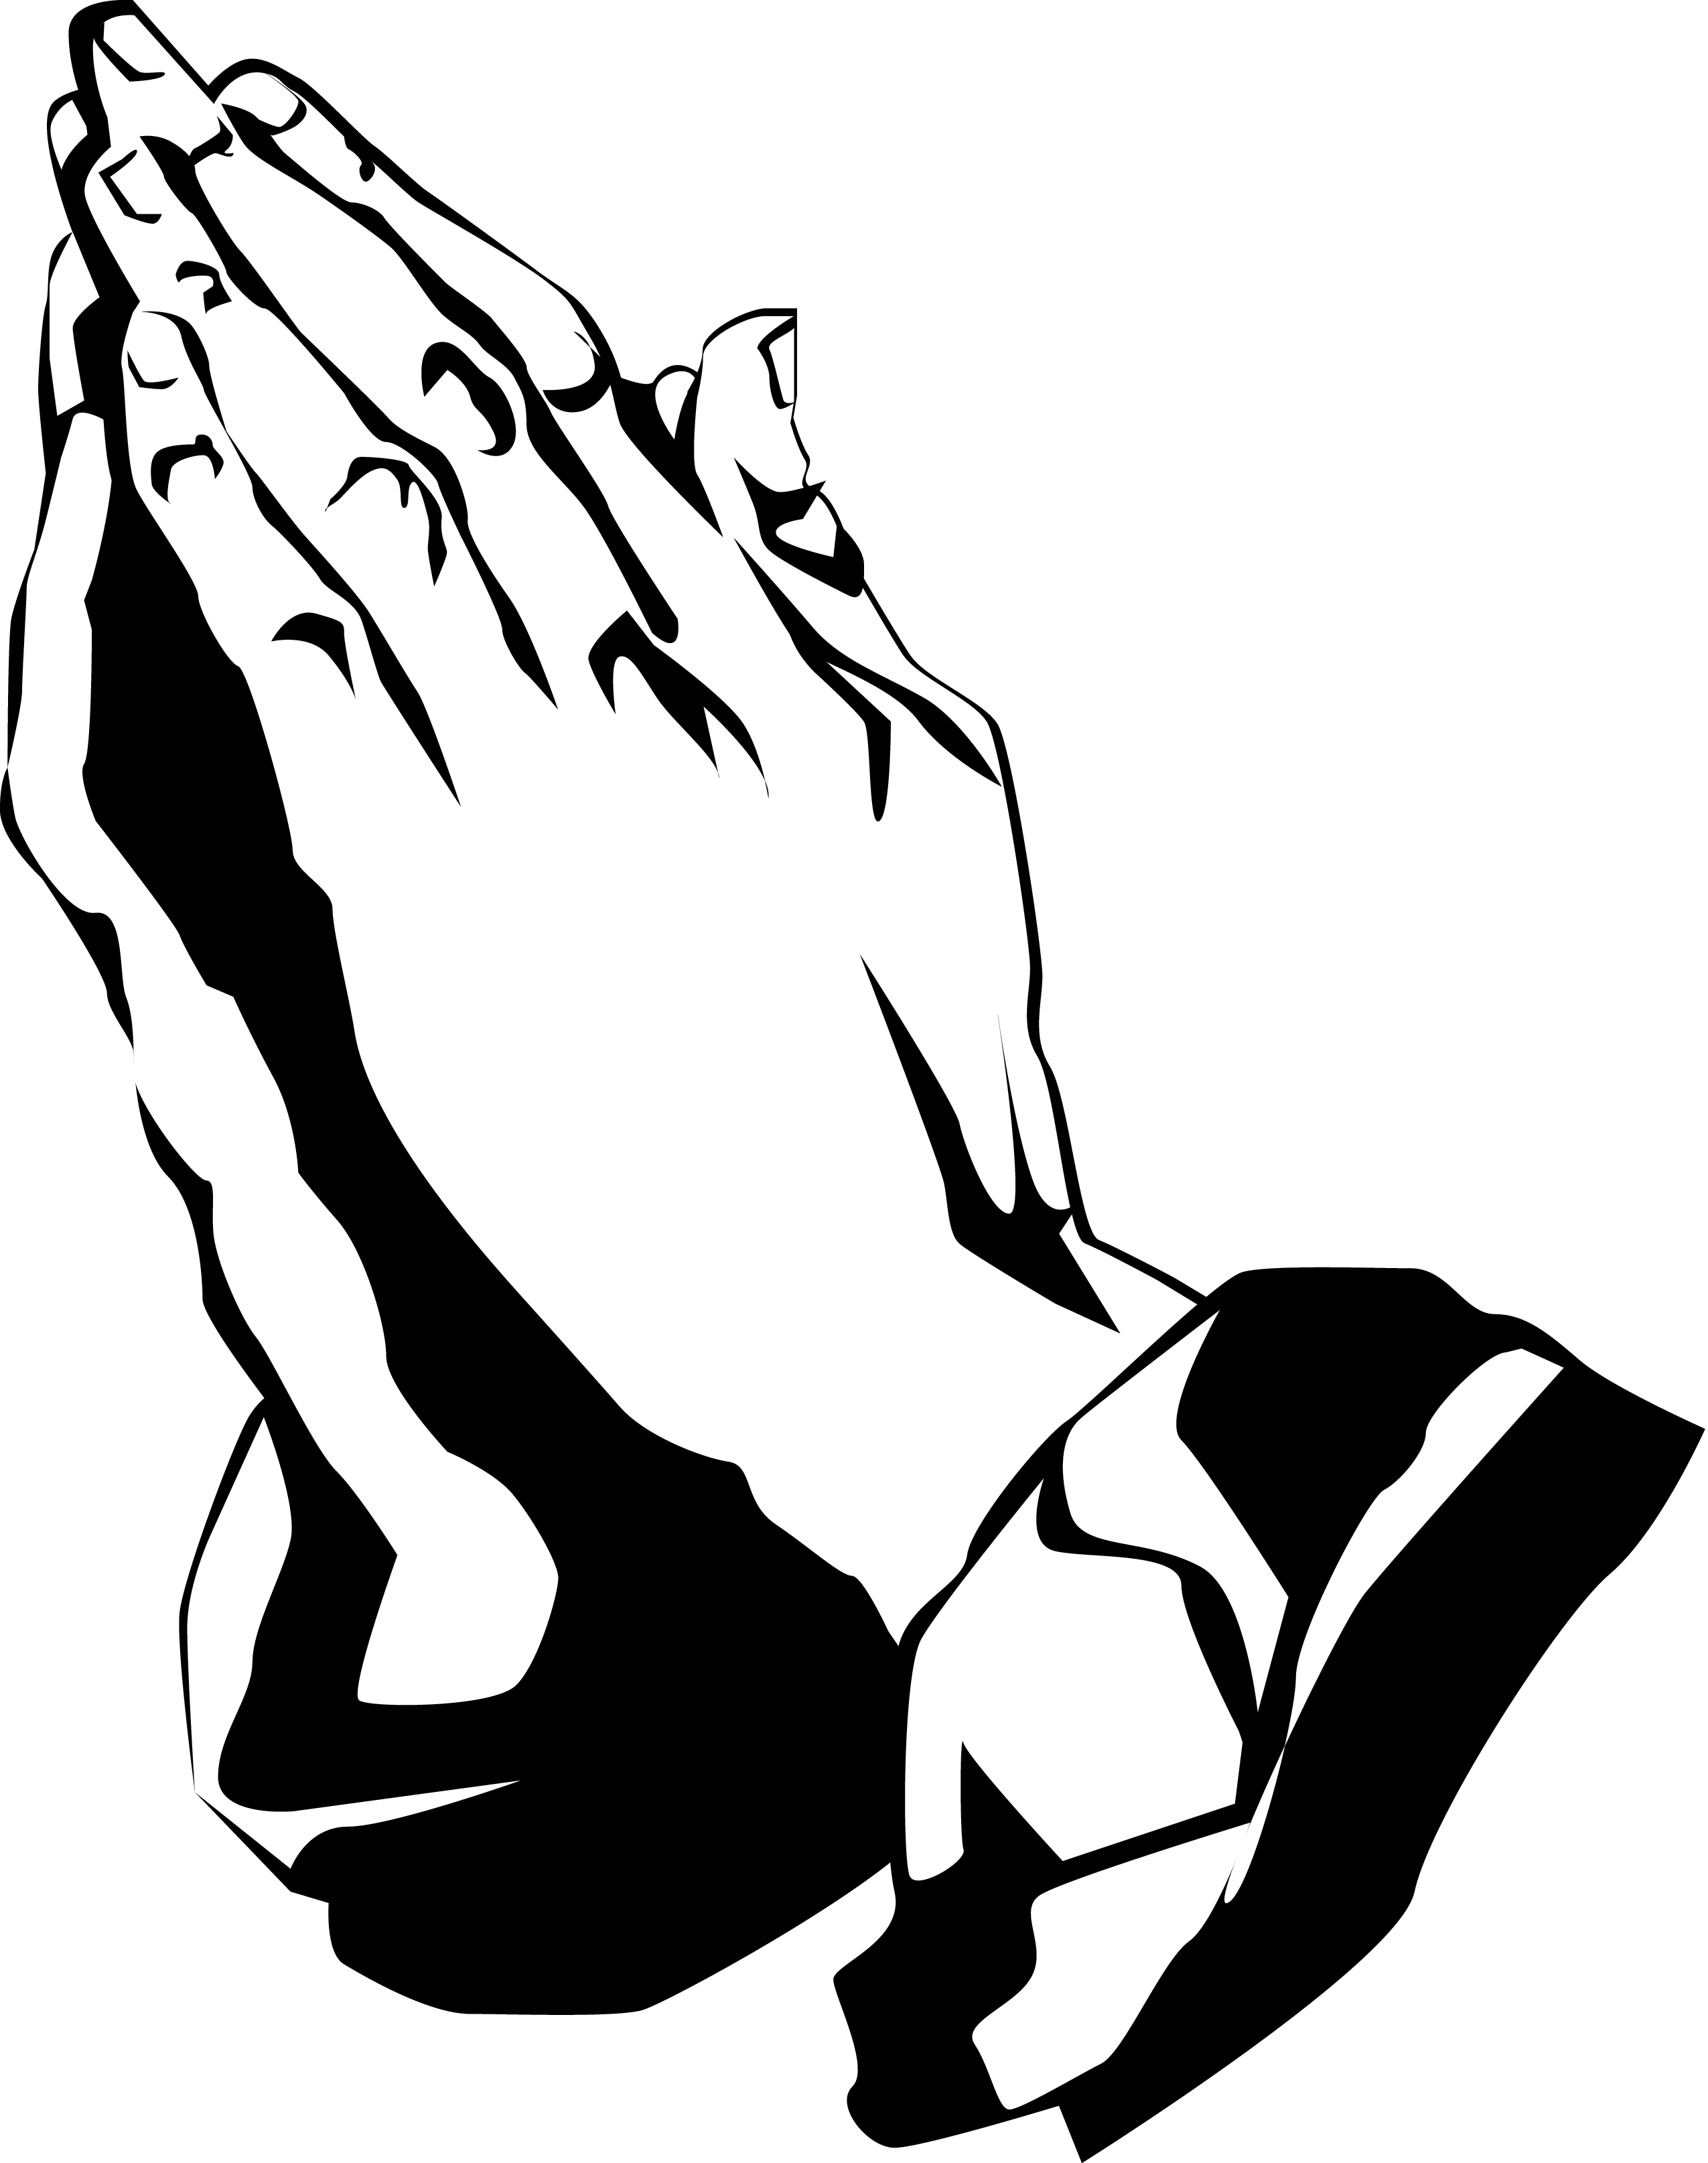 2550x3229 Cross With Praying Hands Clipart